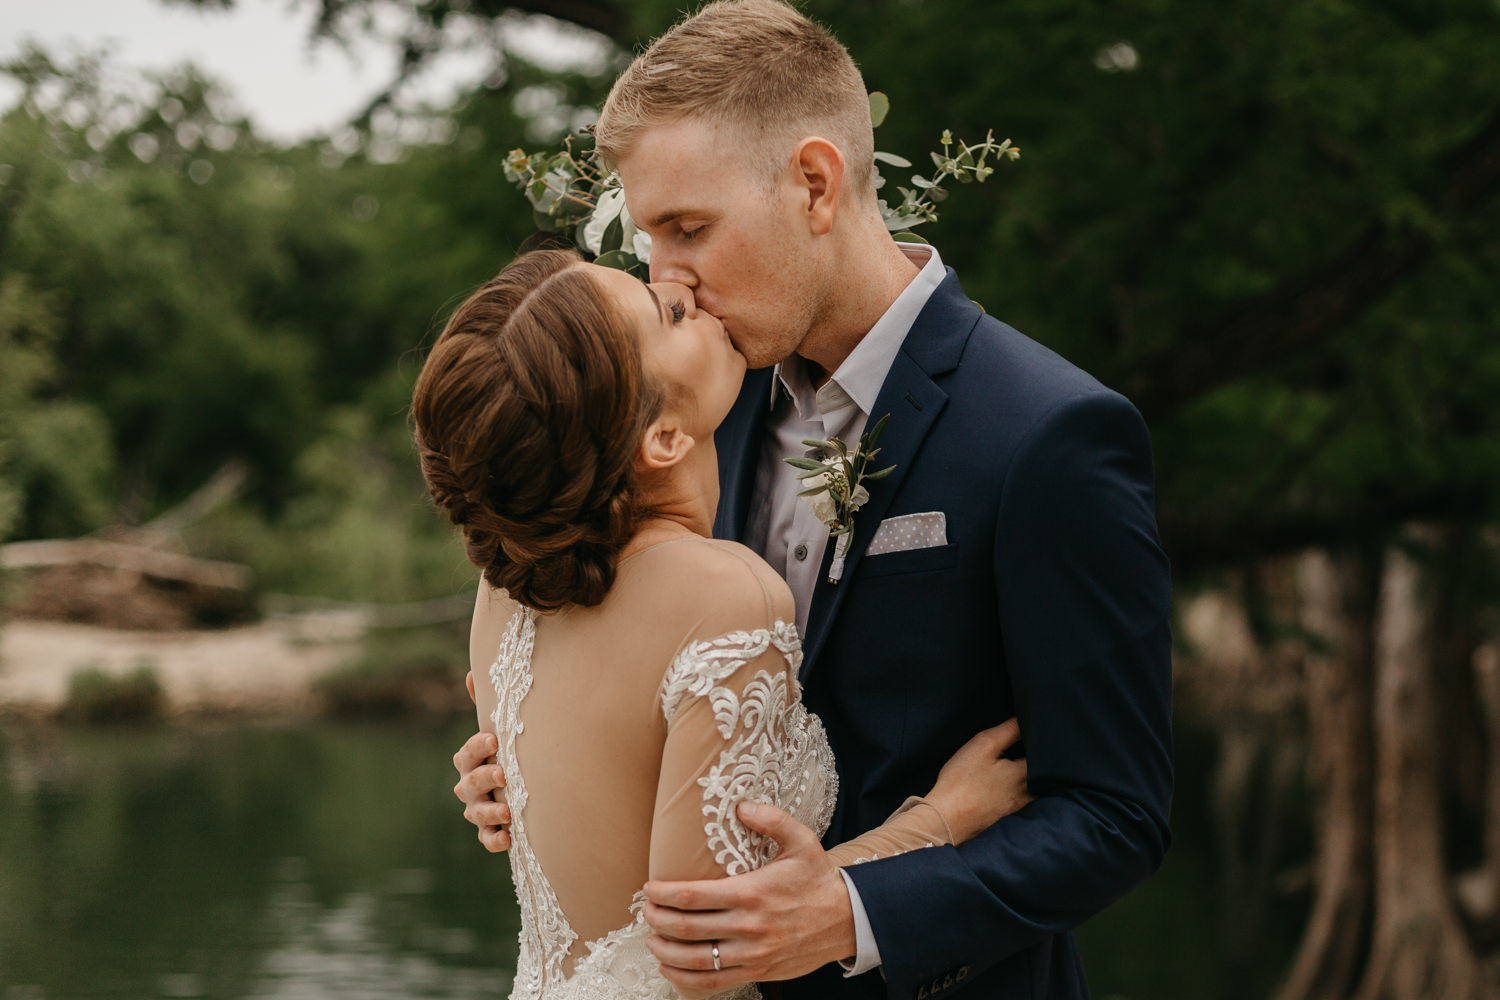 HaileyDylan_Austin Elopement Photographer Austin Wedding Photographer-113.jpg